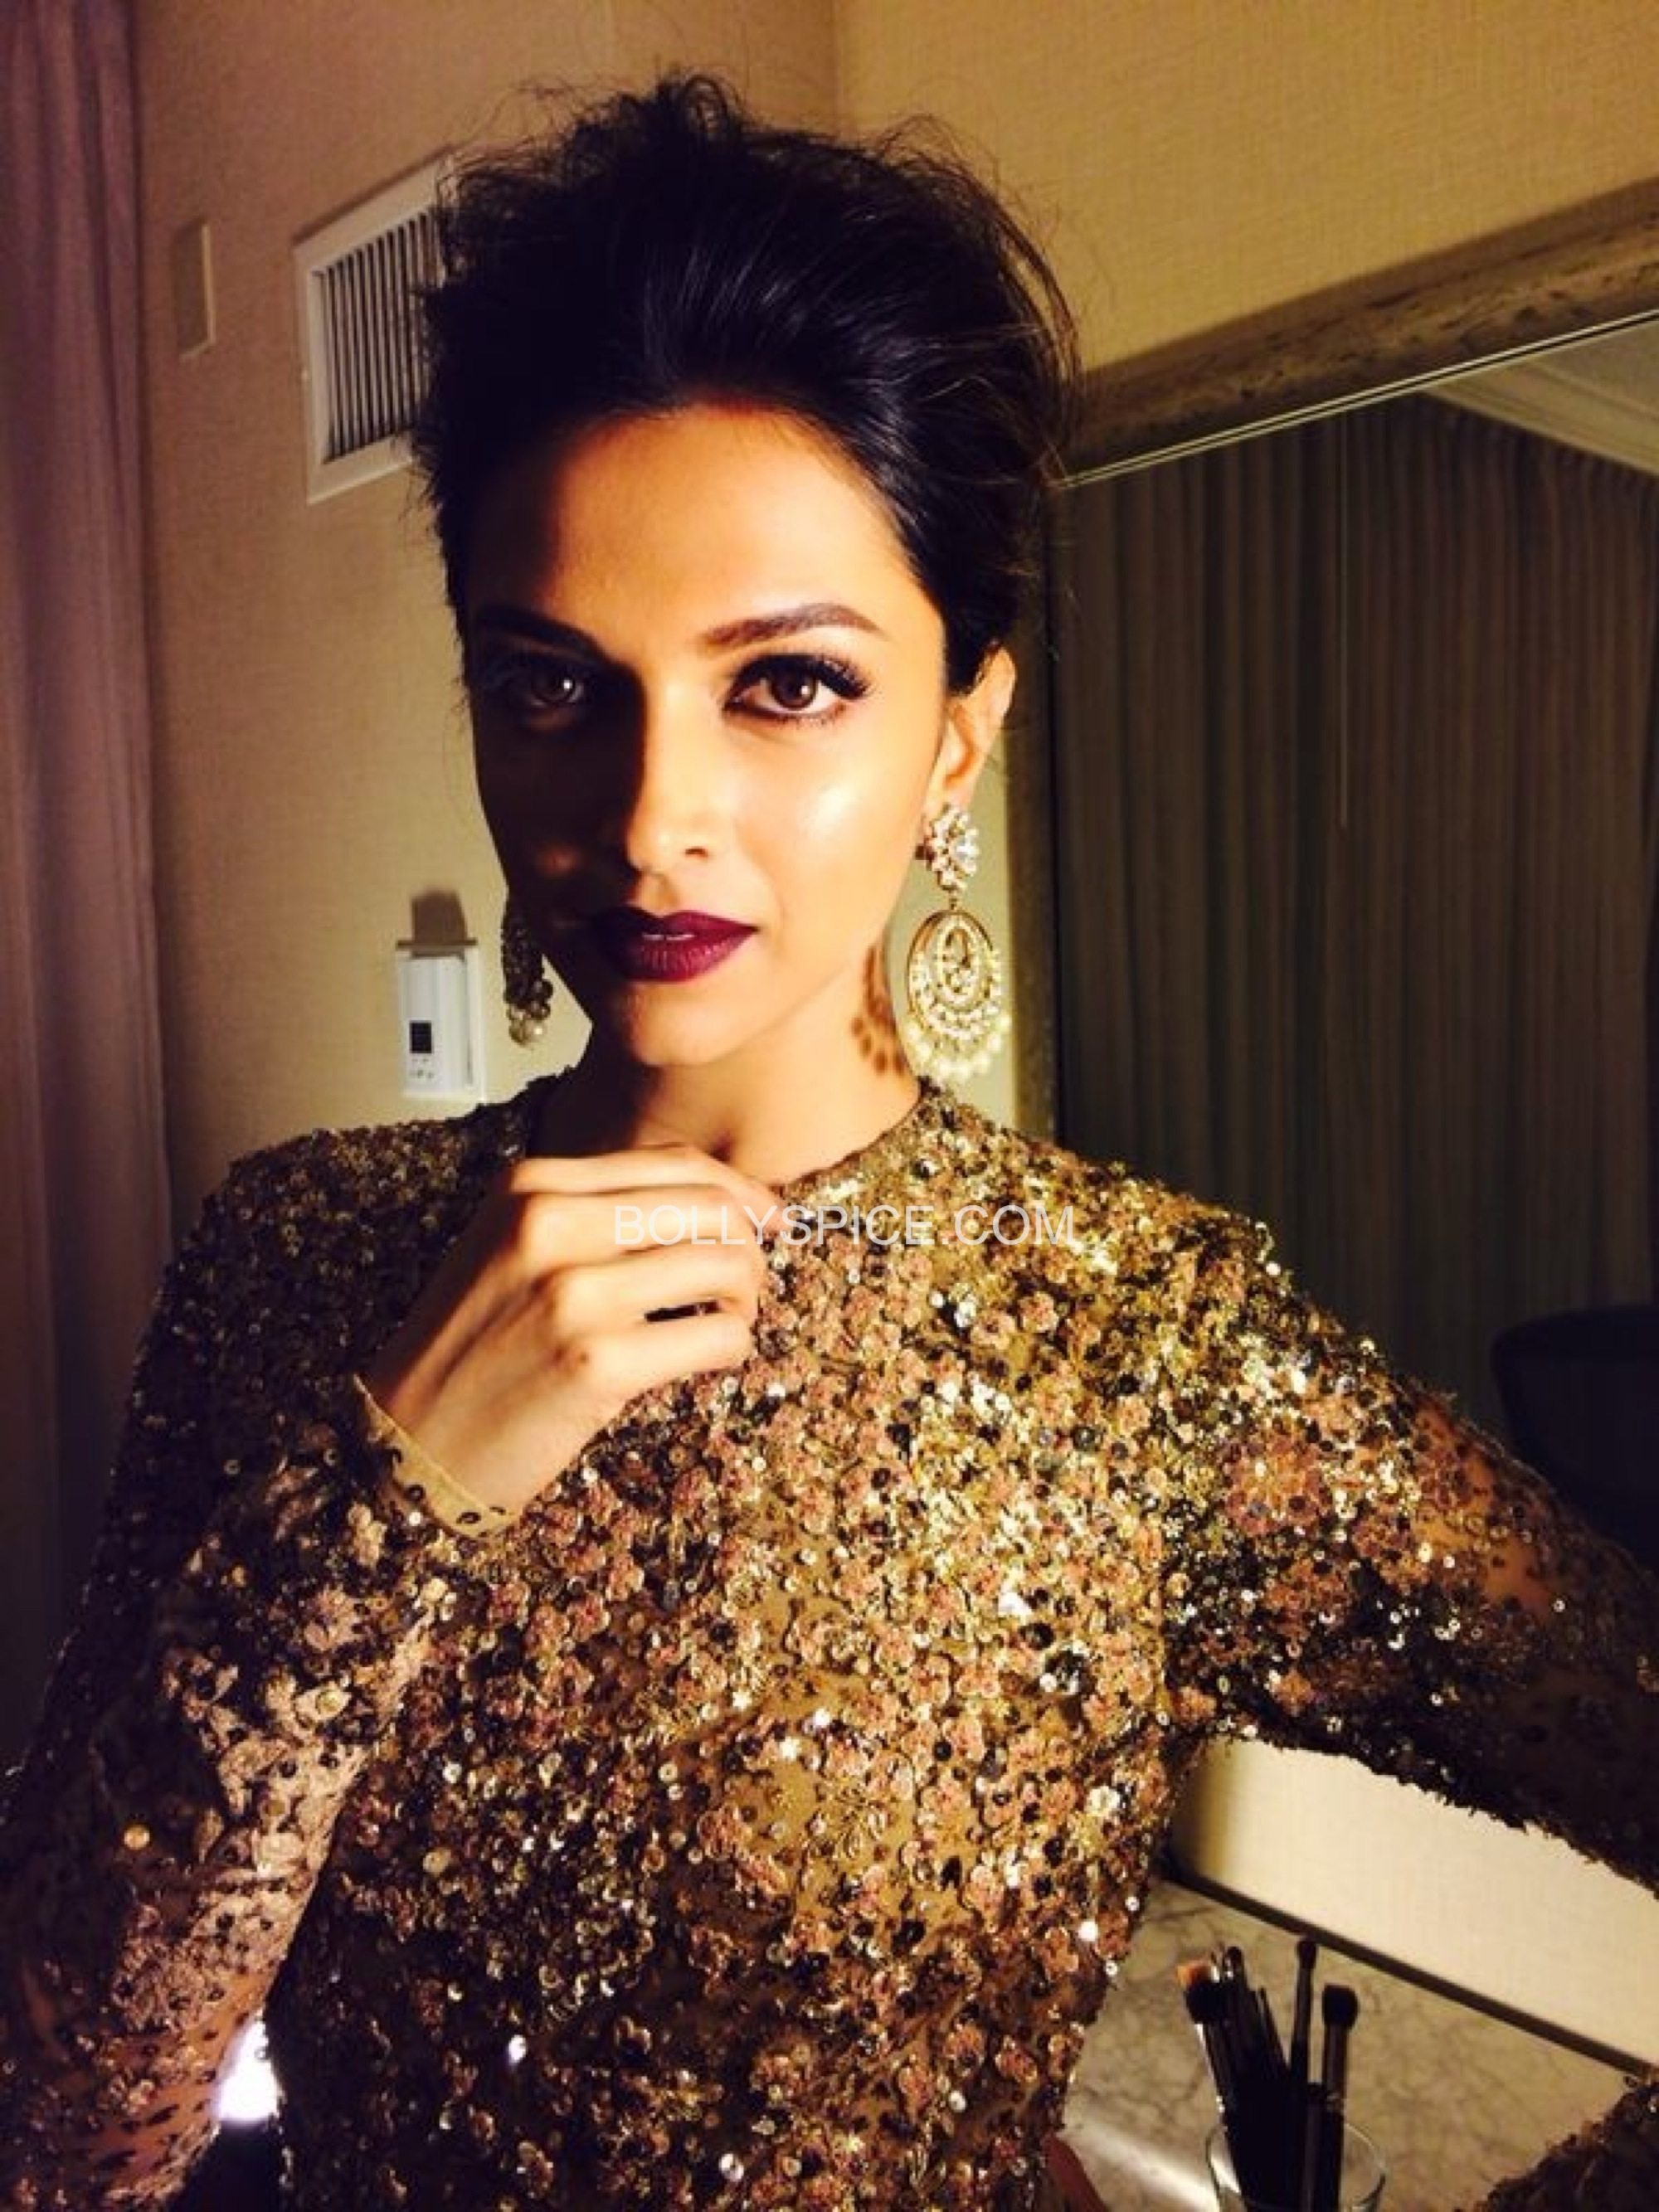 deepikaatiifaexclusive11 Exclusive IIFA Behind the Scenes Pictures of Deepika Padukones Hair and Makeup by Daniel Bauer